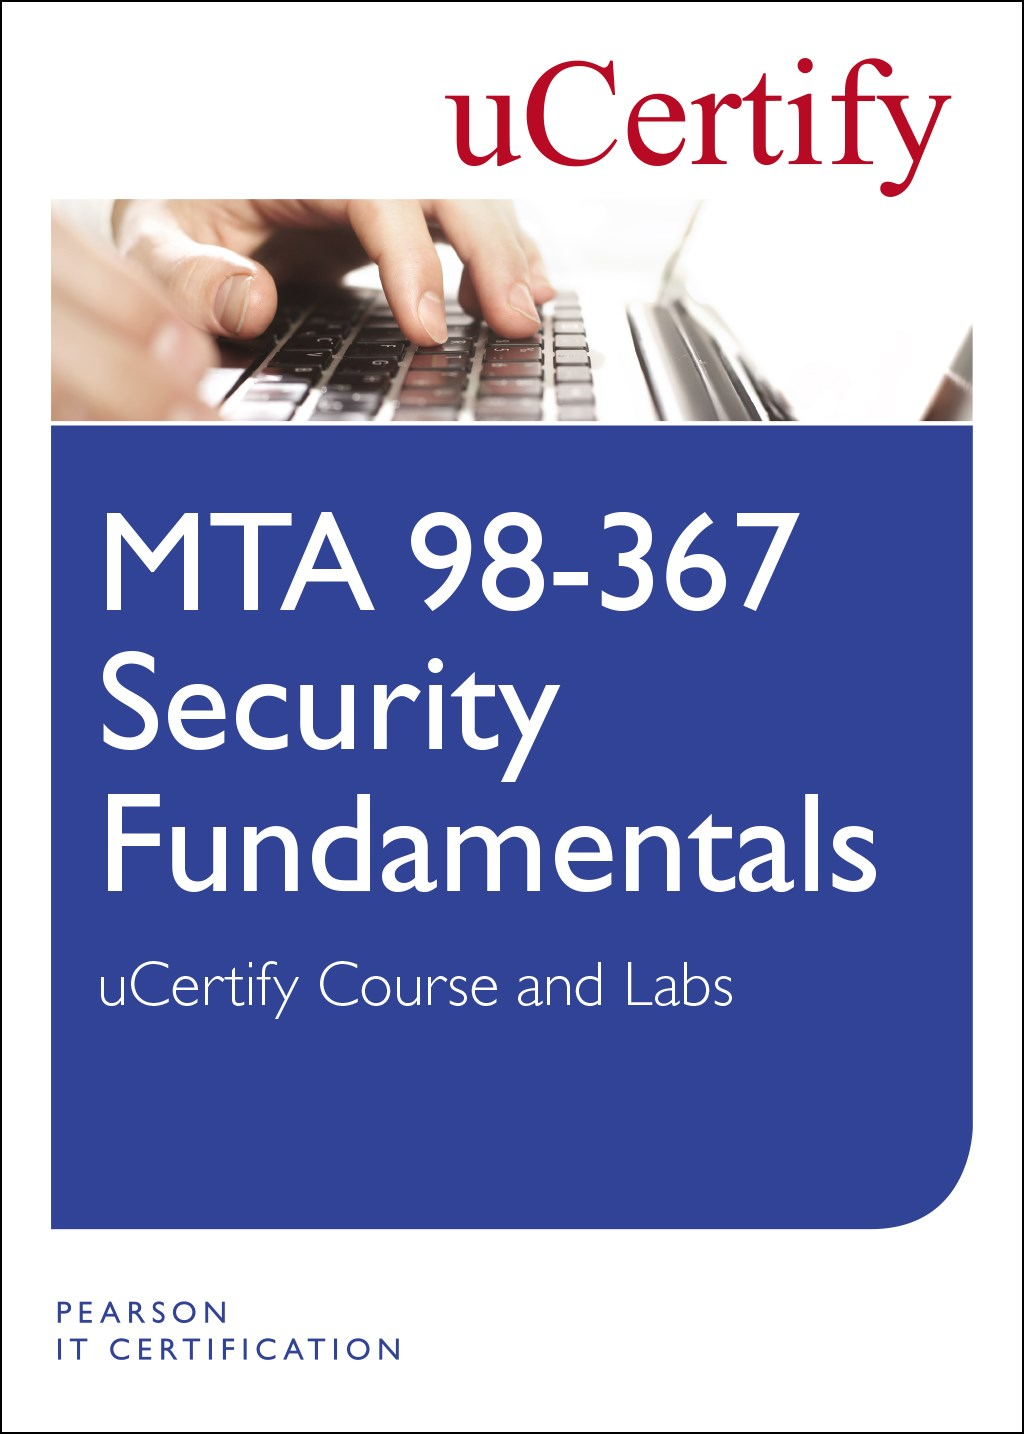 Mta 98 367 Security Fundamentals Ucertify Course And Labs Pearson